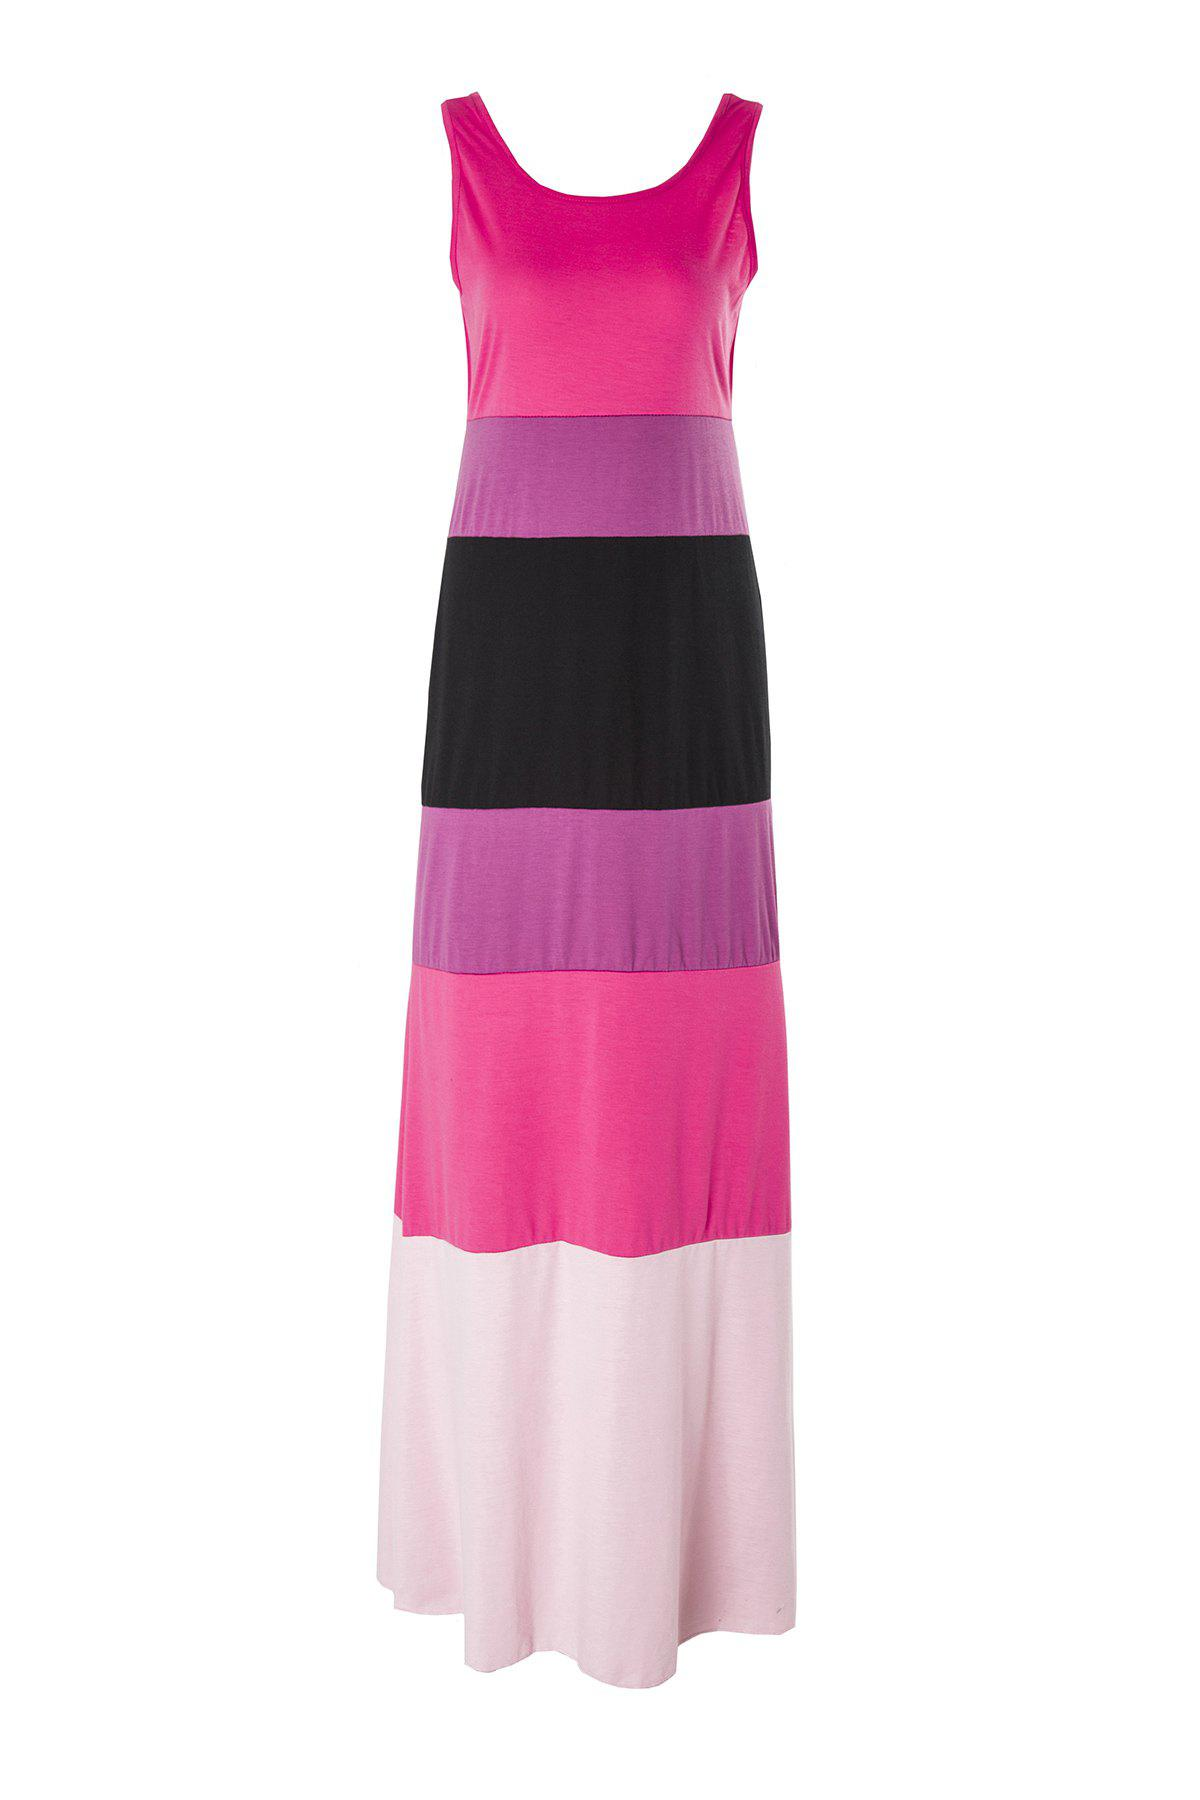 Stylish Scoop Collar Sleeveless Hit Color Striped Women's Dress - ROSE S